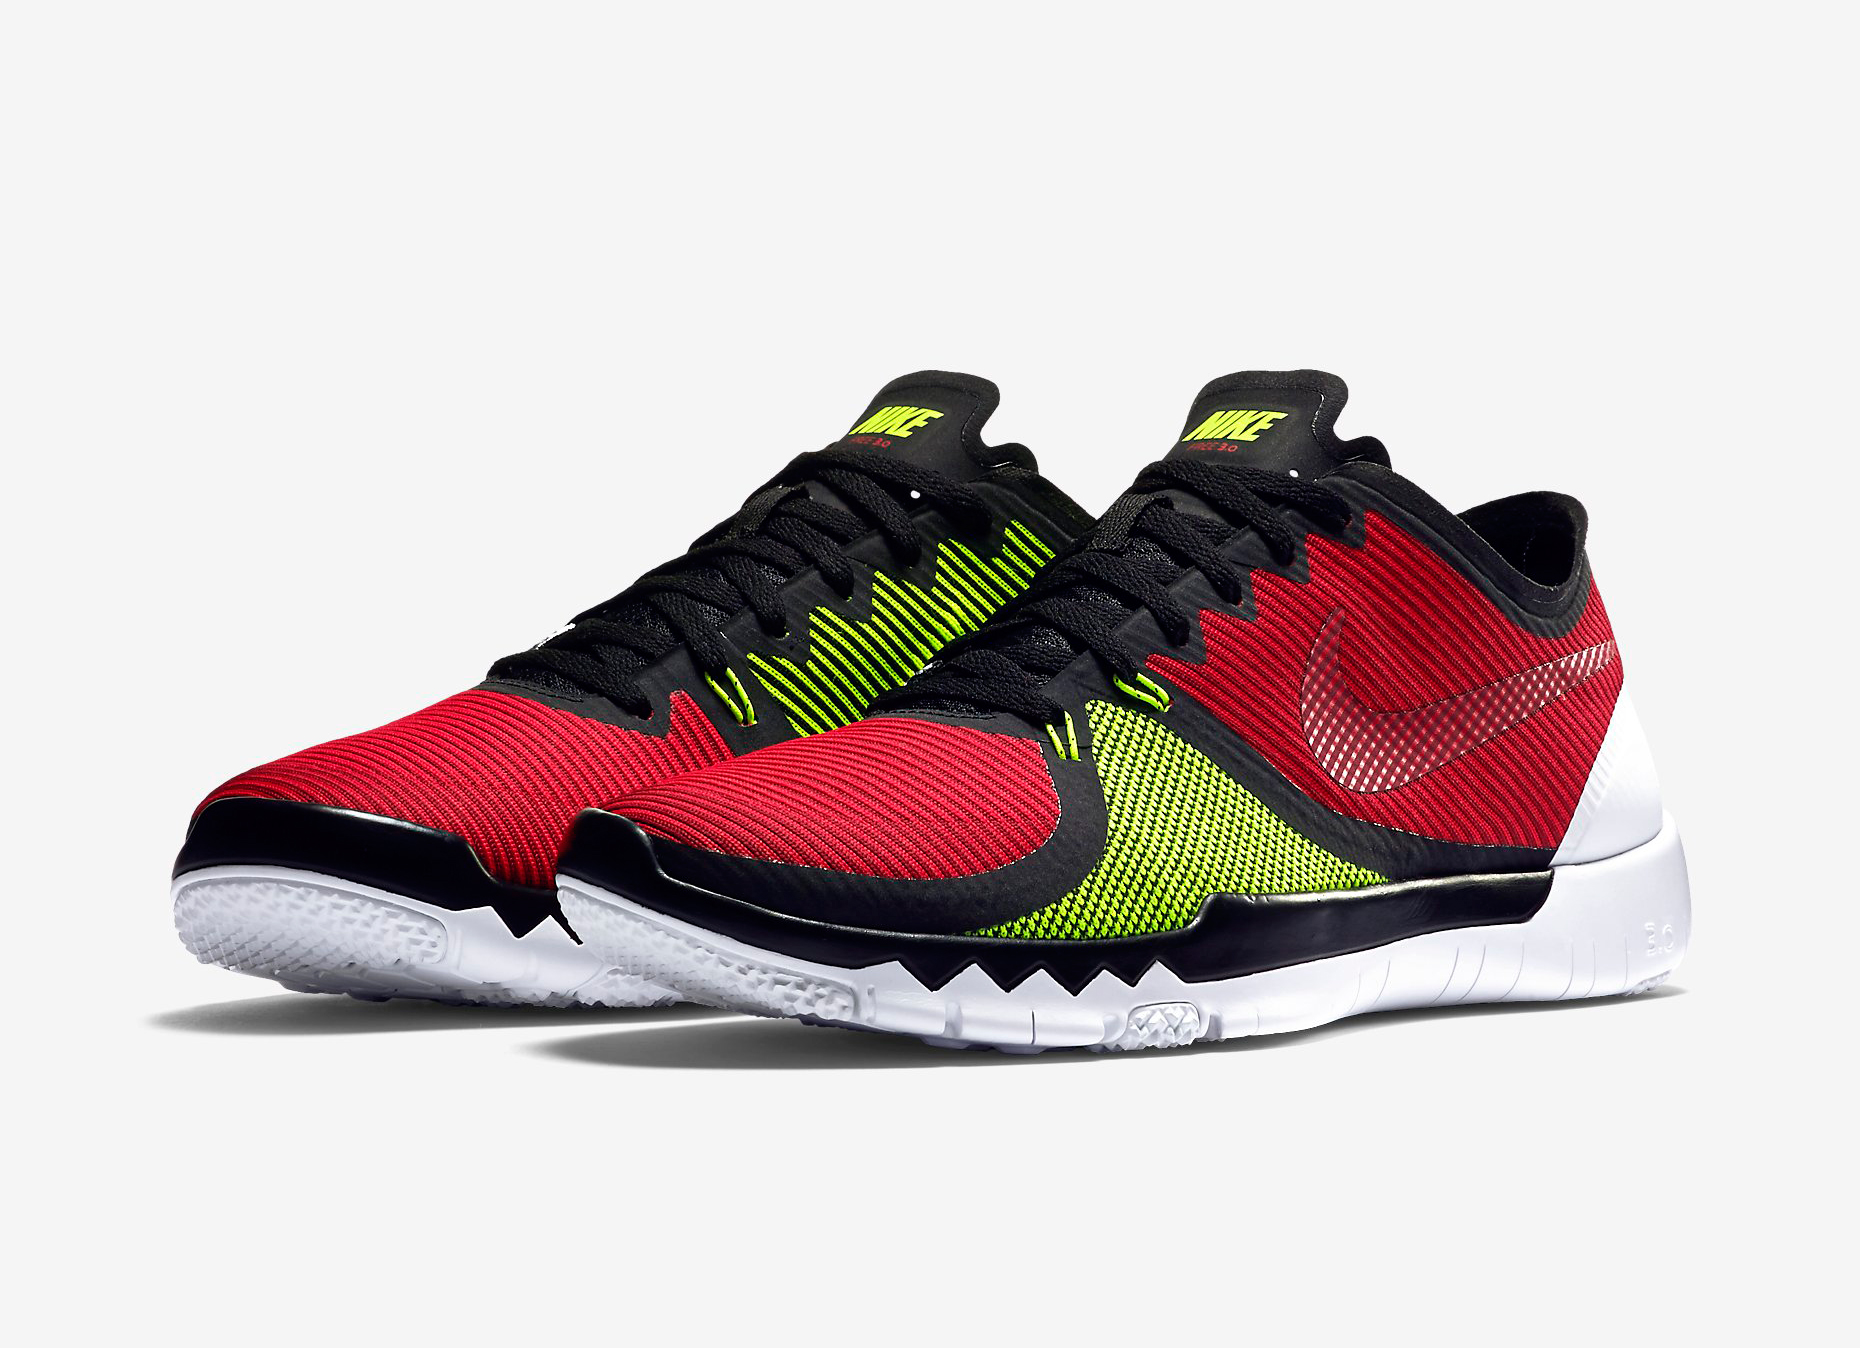 048ed18b9aa60 The Nike Free Trainer 3.0 V4 Men s Training Shoe features new circular-knit  technology for superior lateral control and a responsive fit.